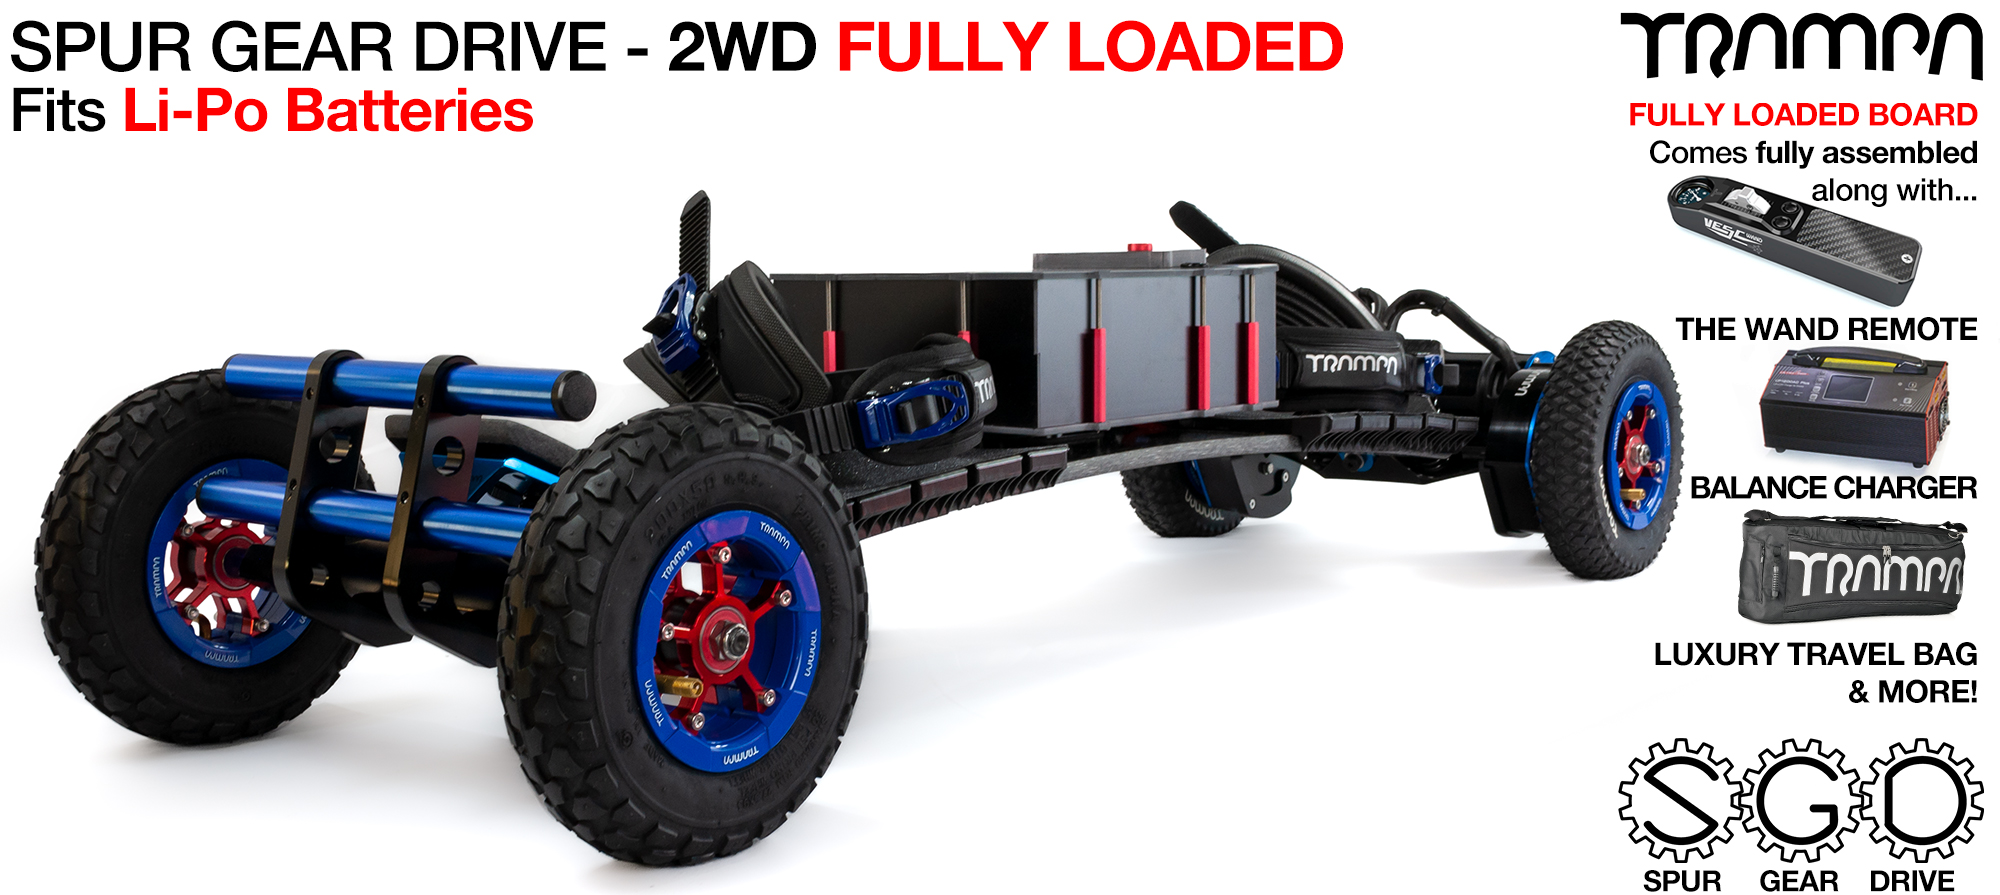 2WD SPUR GEAR DRIVE Electric Mountainboard - FULLY LOADED PHATLAD with 9 inch PHATLADs on rear 8 inch HYPA's on front, Mud-Pluggers supplied with The WAND, 15A Charger